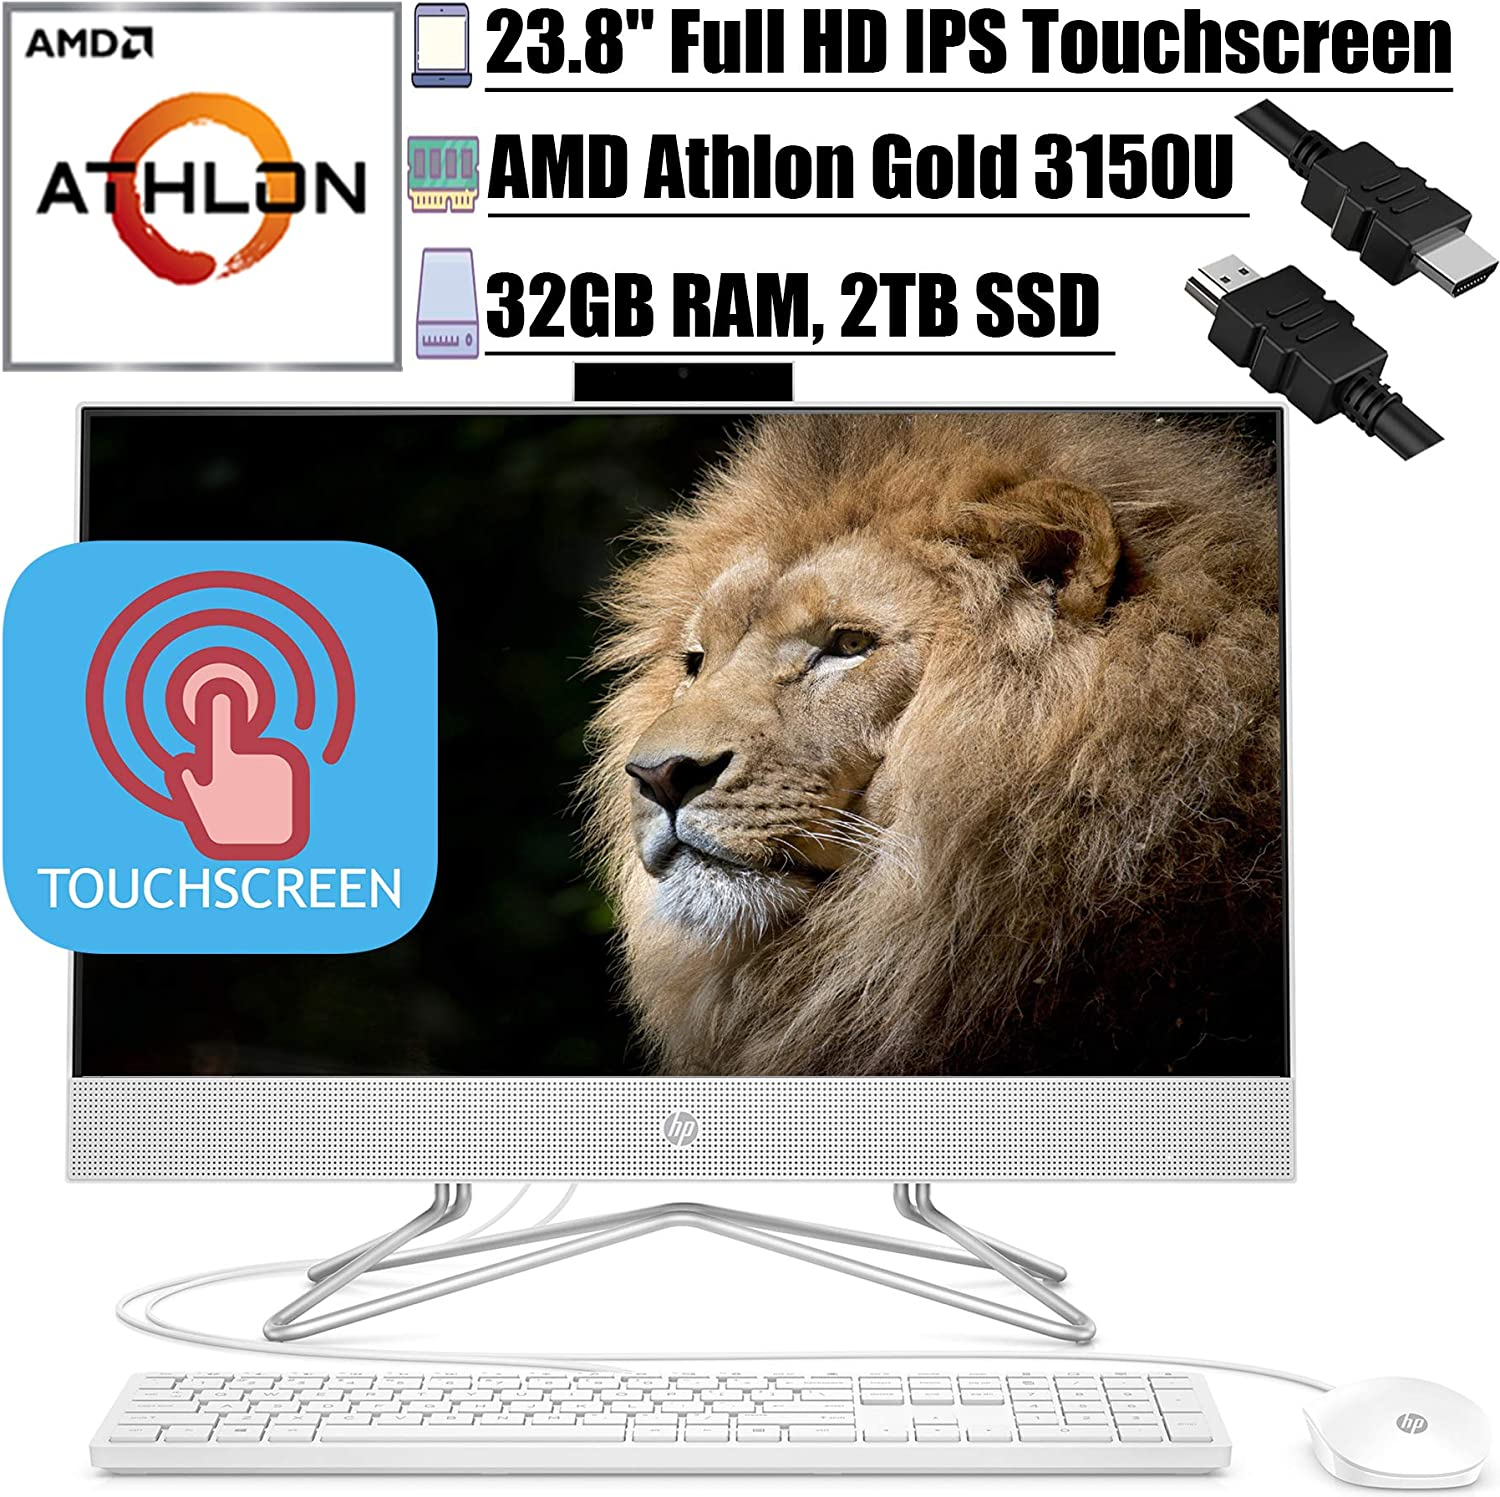 """2020 Flagship HP 24 All in One Desktop Computer 23.8""""FHD IPS Touchscreen Display AMD Athlon Gold 3150U 32GB DDR4 2TB SSD WiFi DVD AMD Radeon Graphics Keyboard and Mouse Win 10 + iCarp HDMI Cable"""